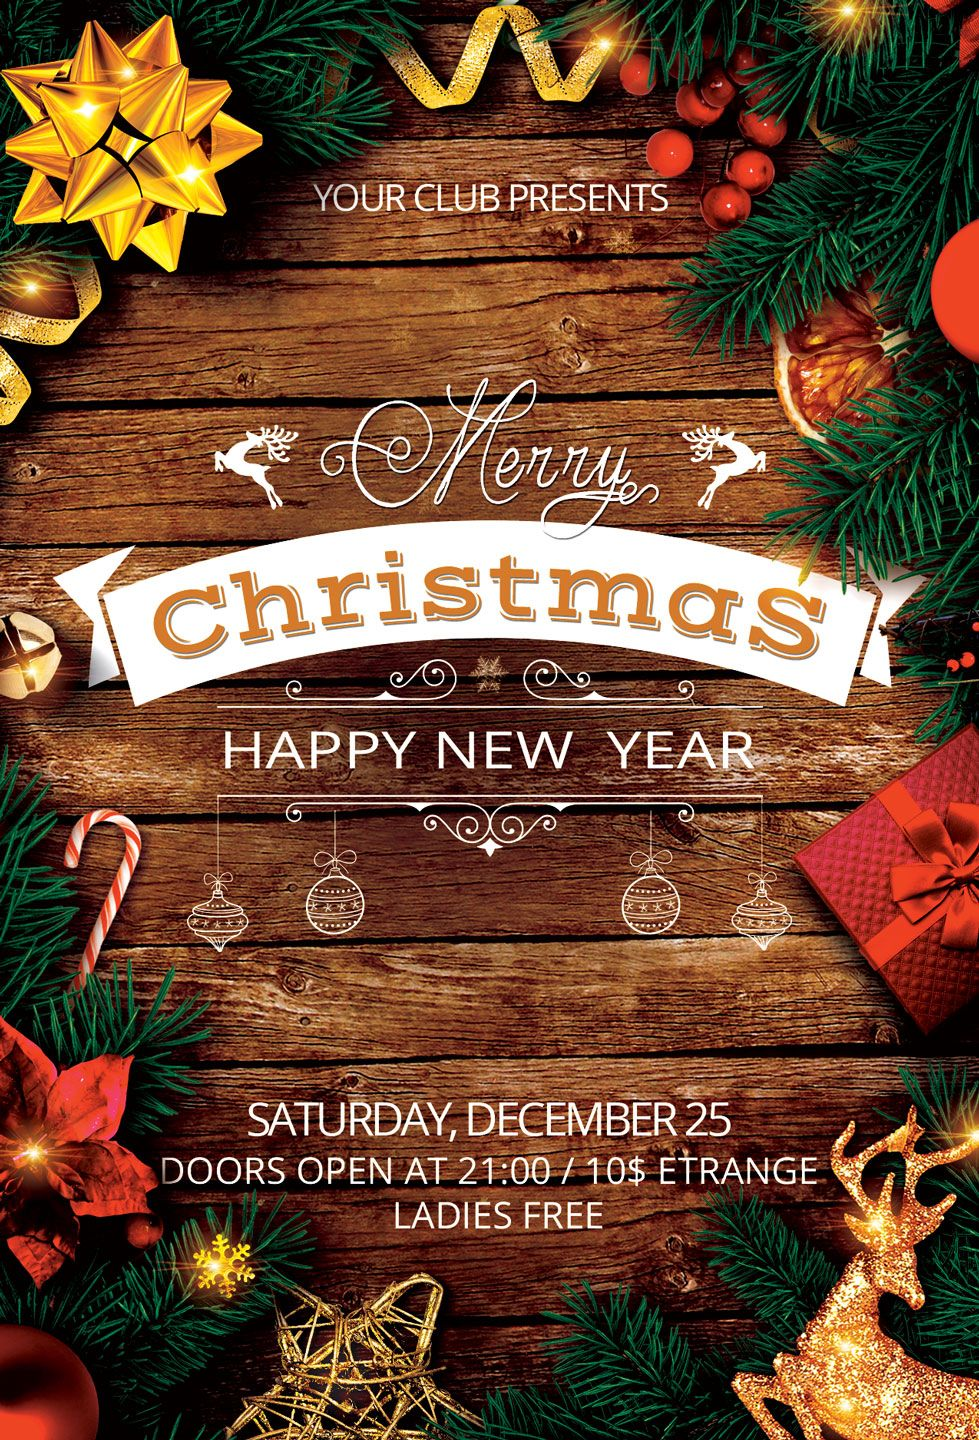 Christmas Gala 2021 Christmas New Year Party Flyer 157433 Flyers Design Bundles In 2021 Christmas Flyer Rustic Christmas Party Invitations Holiday Flyer